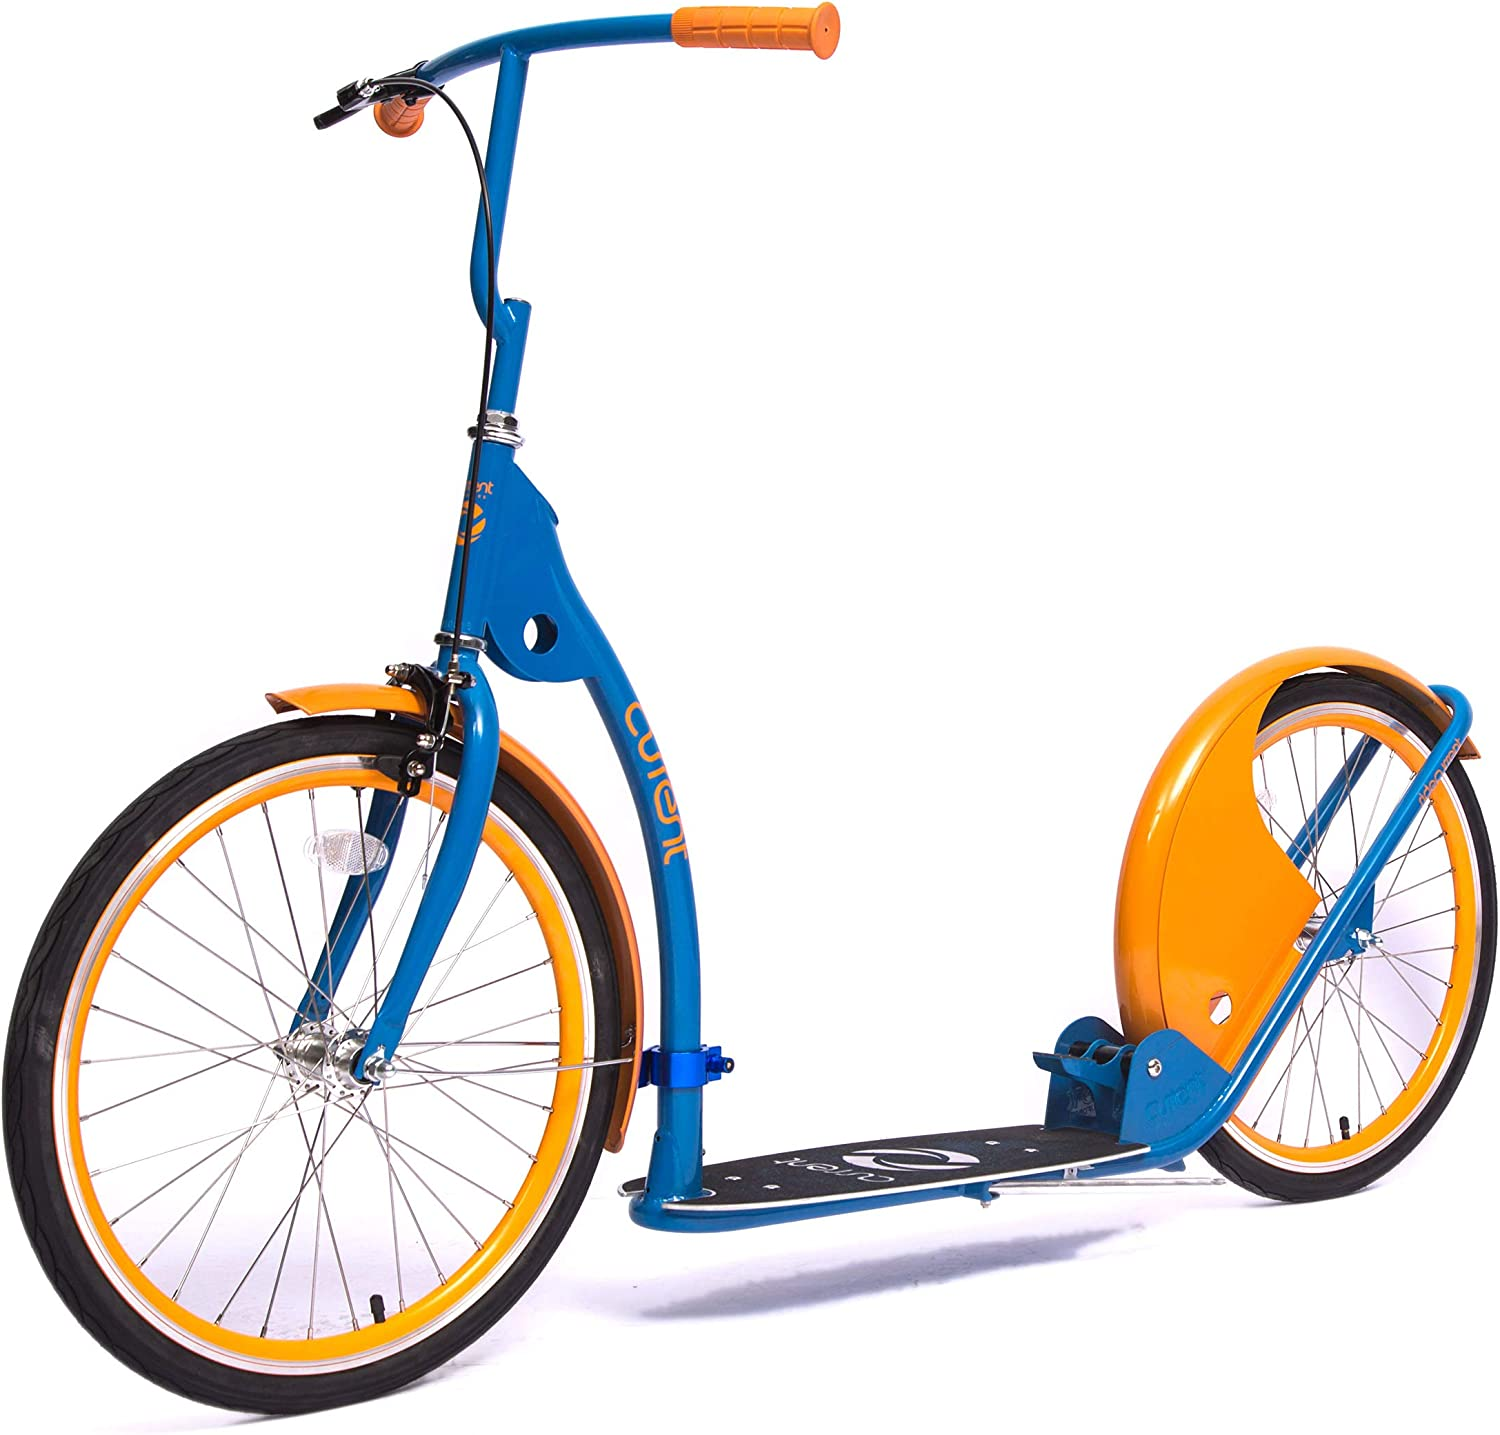 Current Coasters Foldable Kickbike Scooter outlet for Adults Special Campaign Teens and